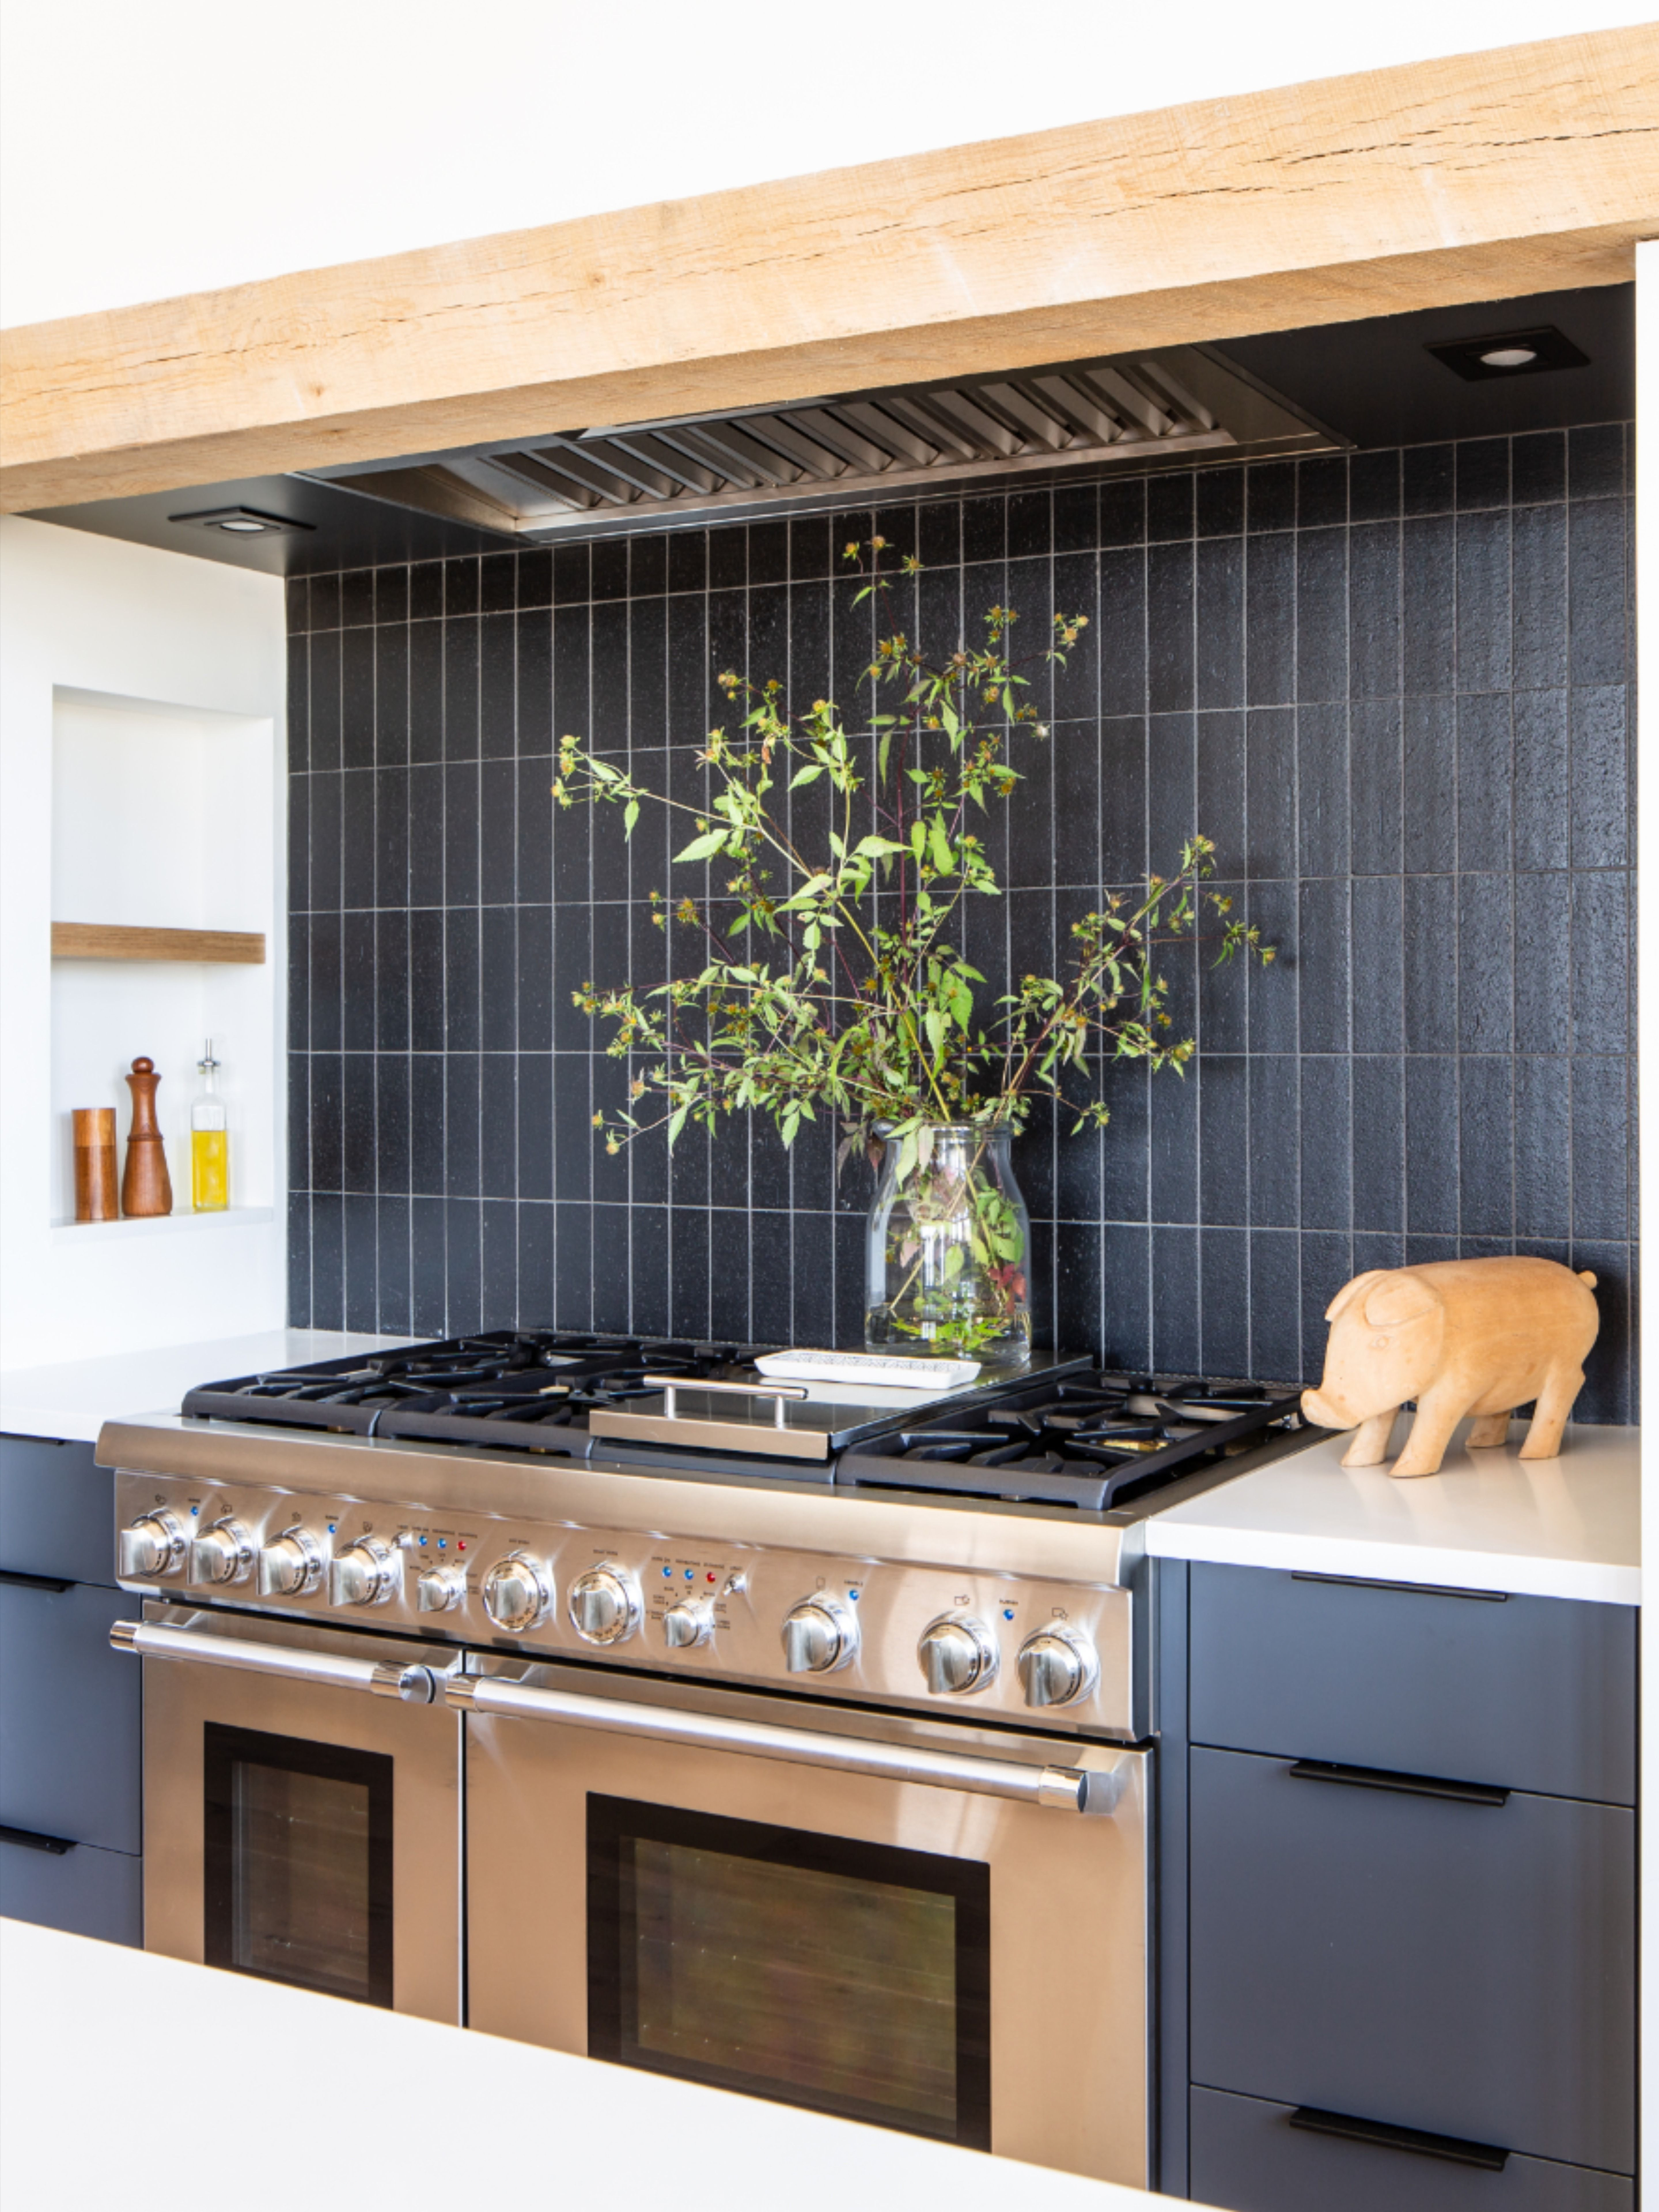 Liberty Brick 2 1 2 X8 X3 8 Lennox In 2020 Black Tiles Kitchen Kitchen Remodel Rustic Kitchen